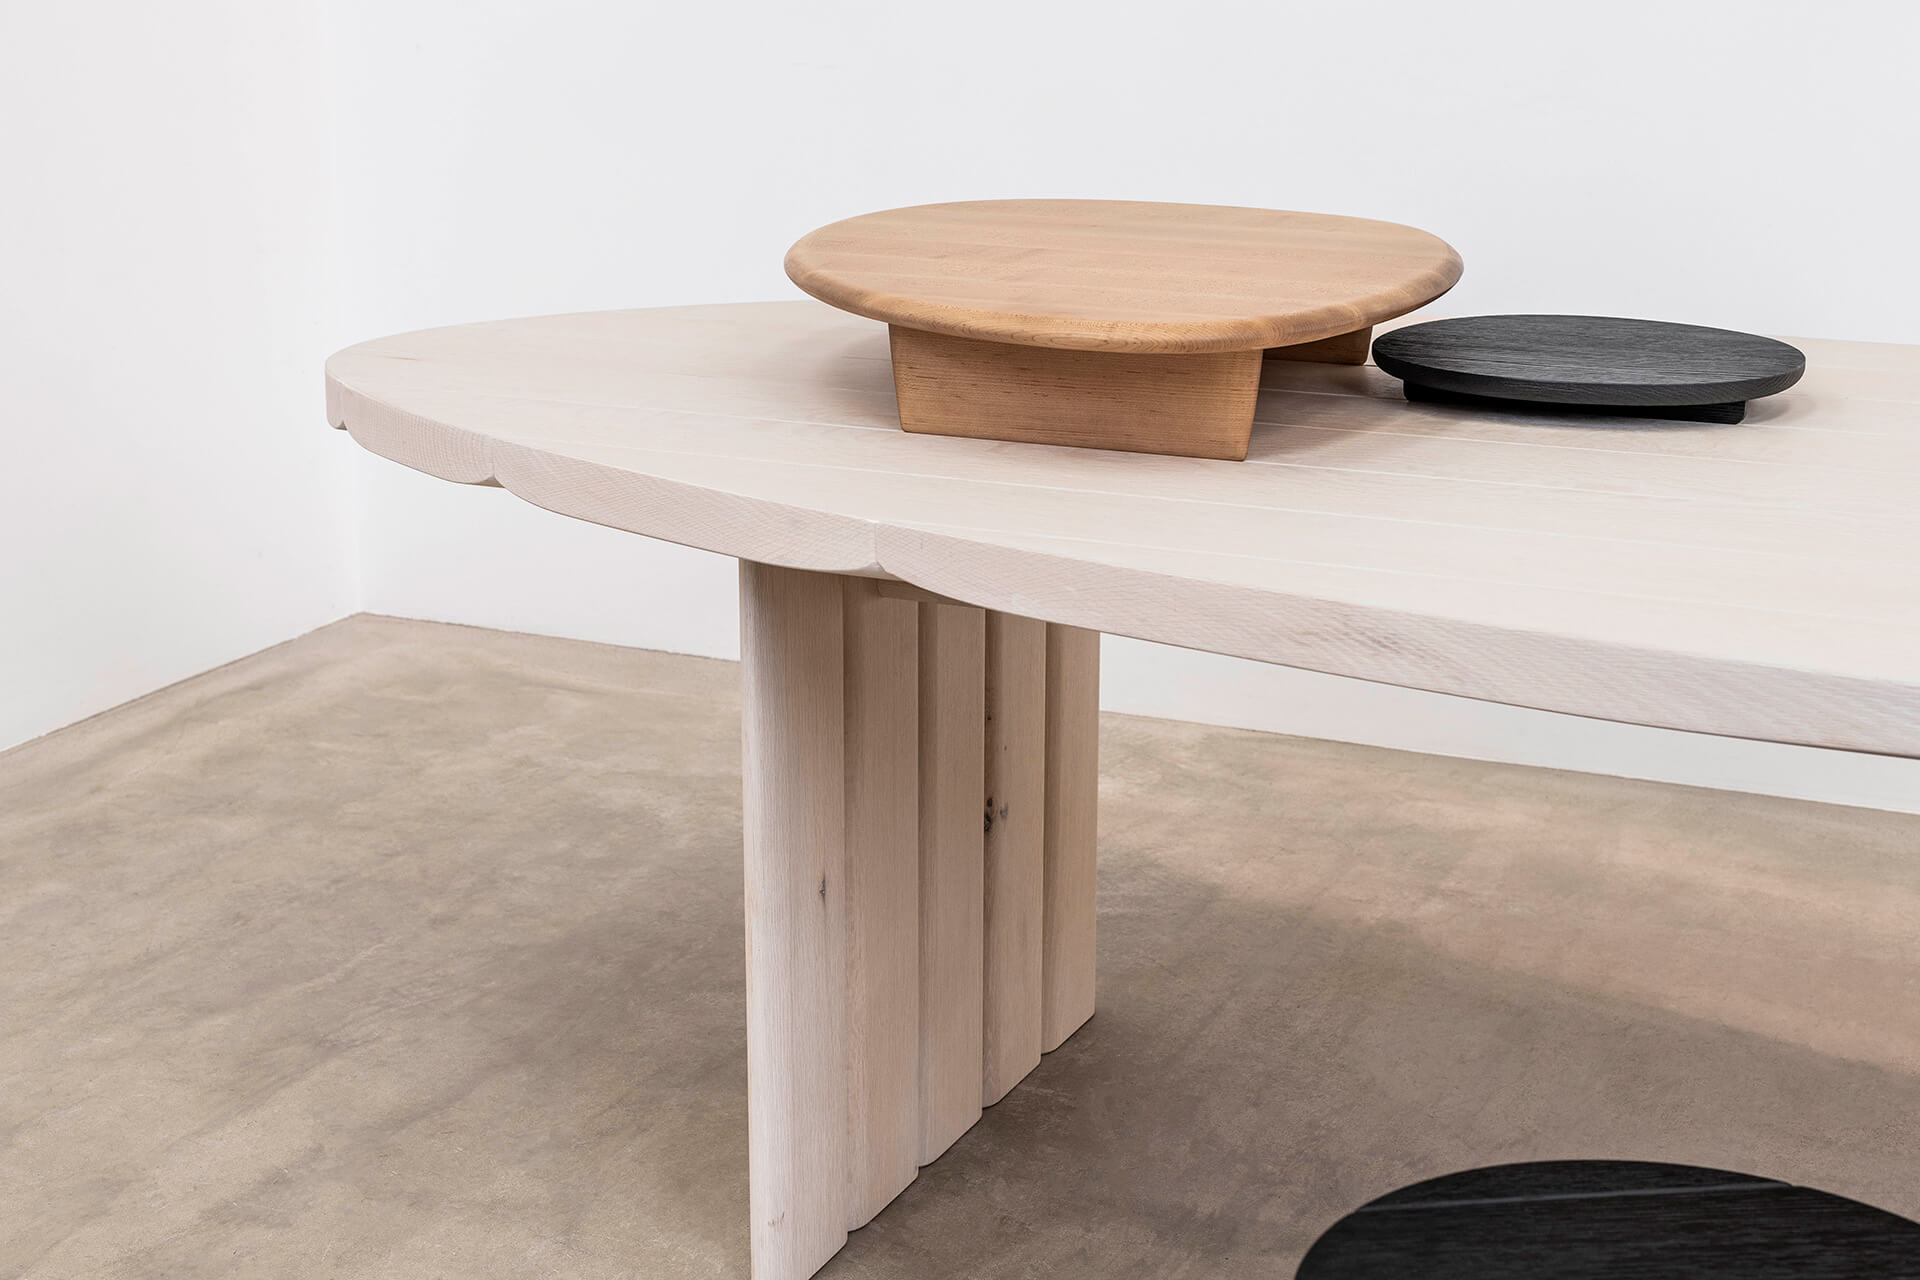 Stammtisch - a regular table for friends and family to gather | Connected | Sebastian Herkner | STIRworld